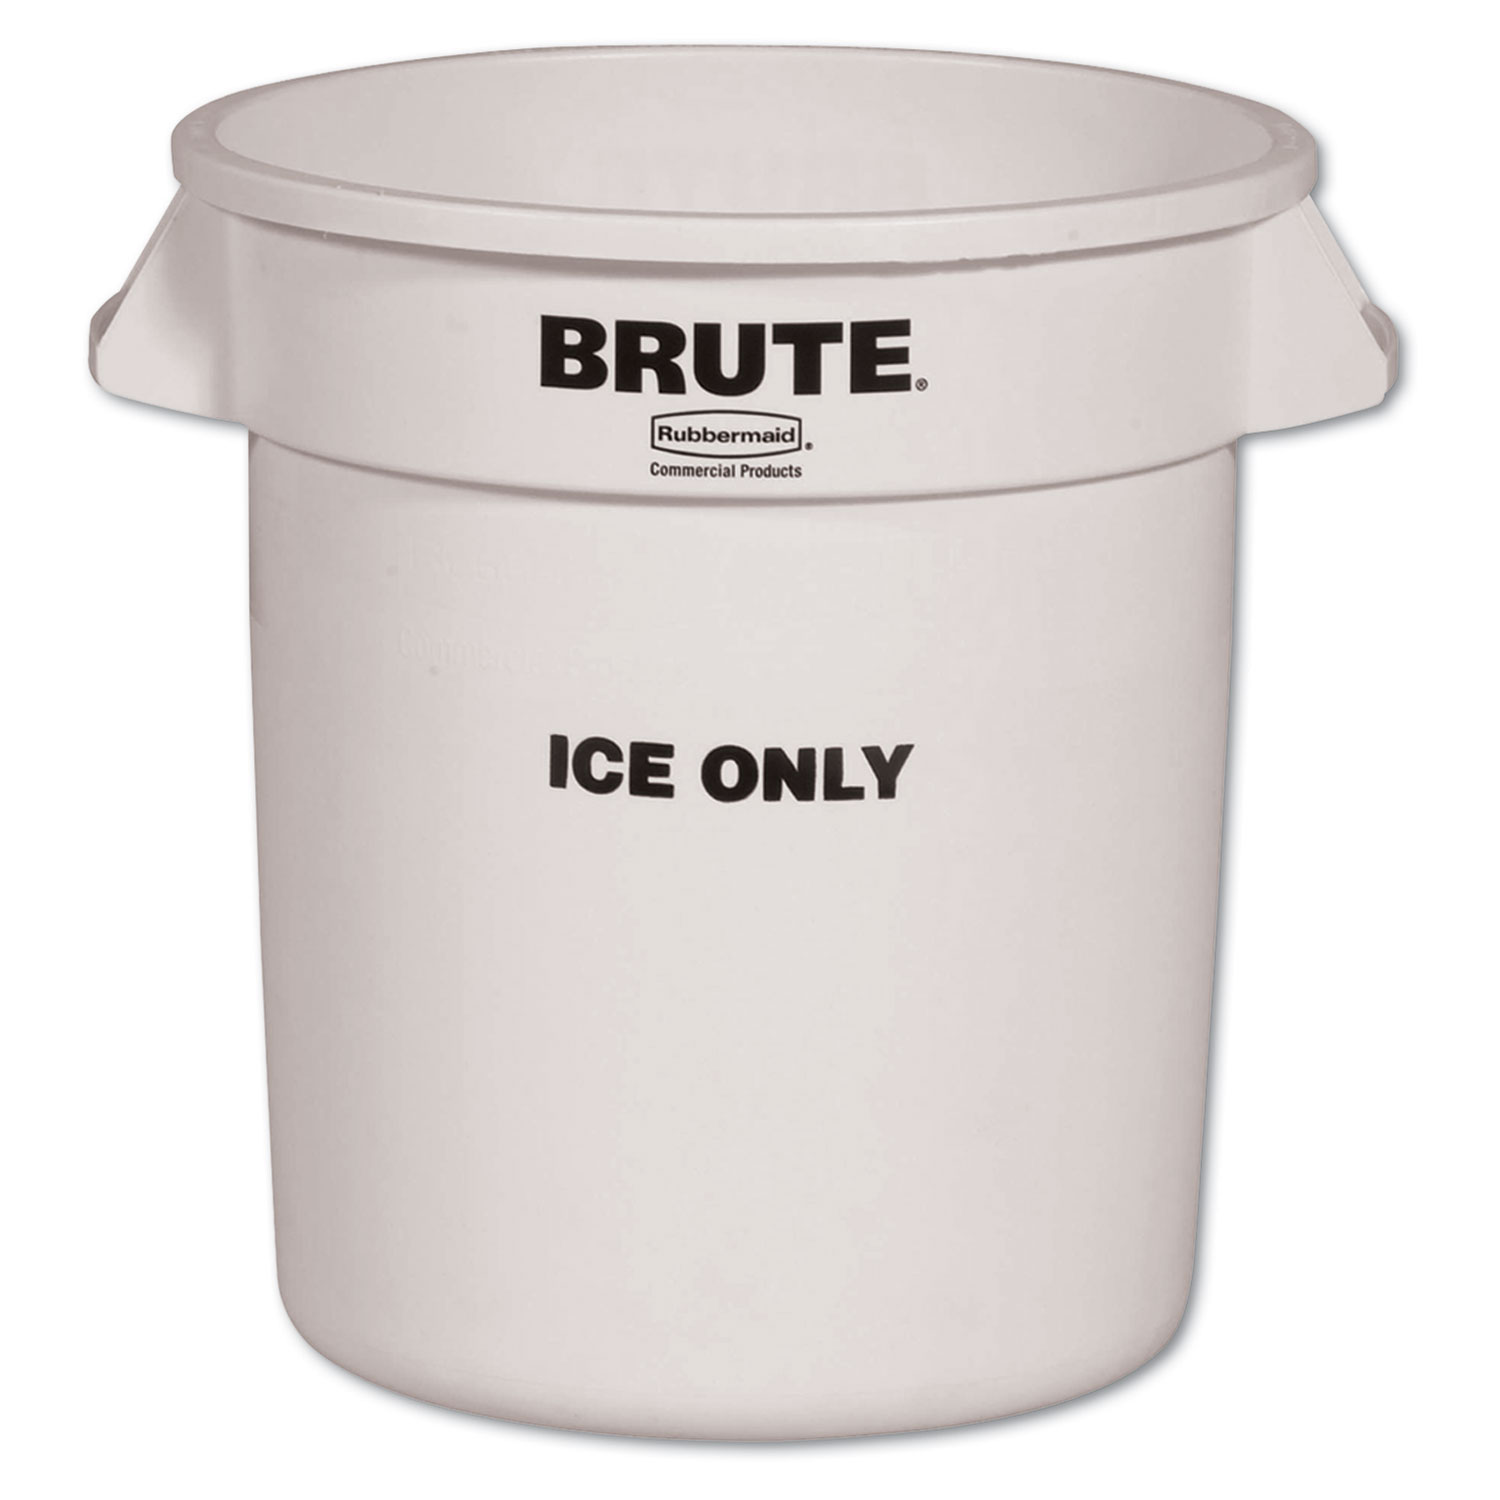 Brute Ice-Only Container, 10gal, White